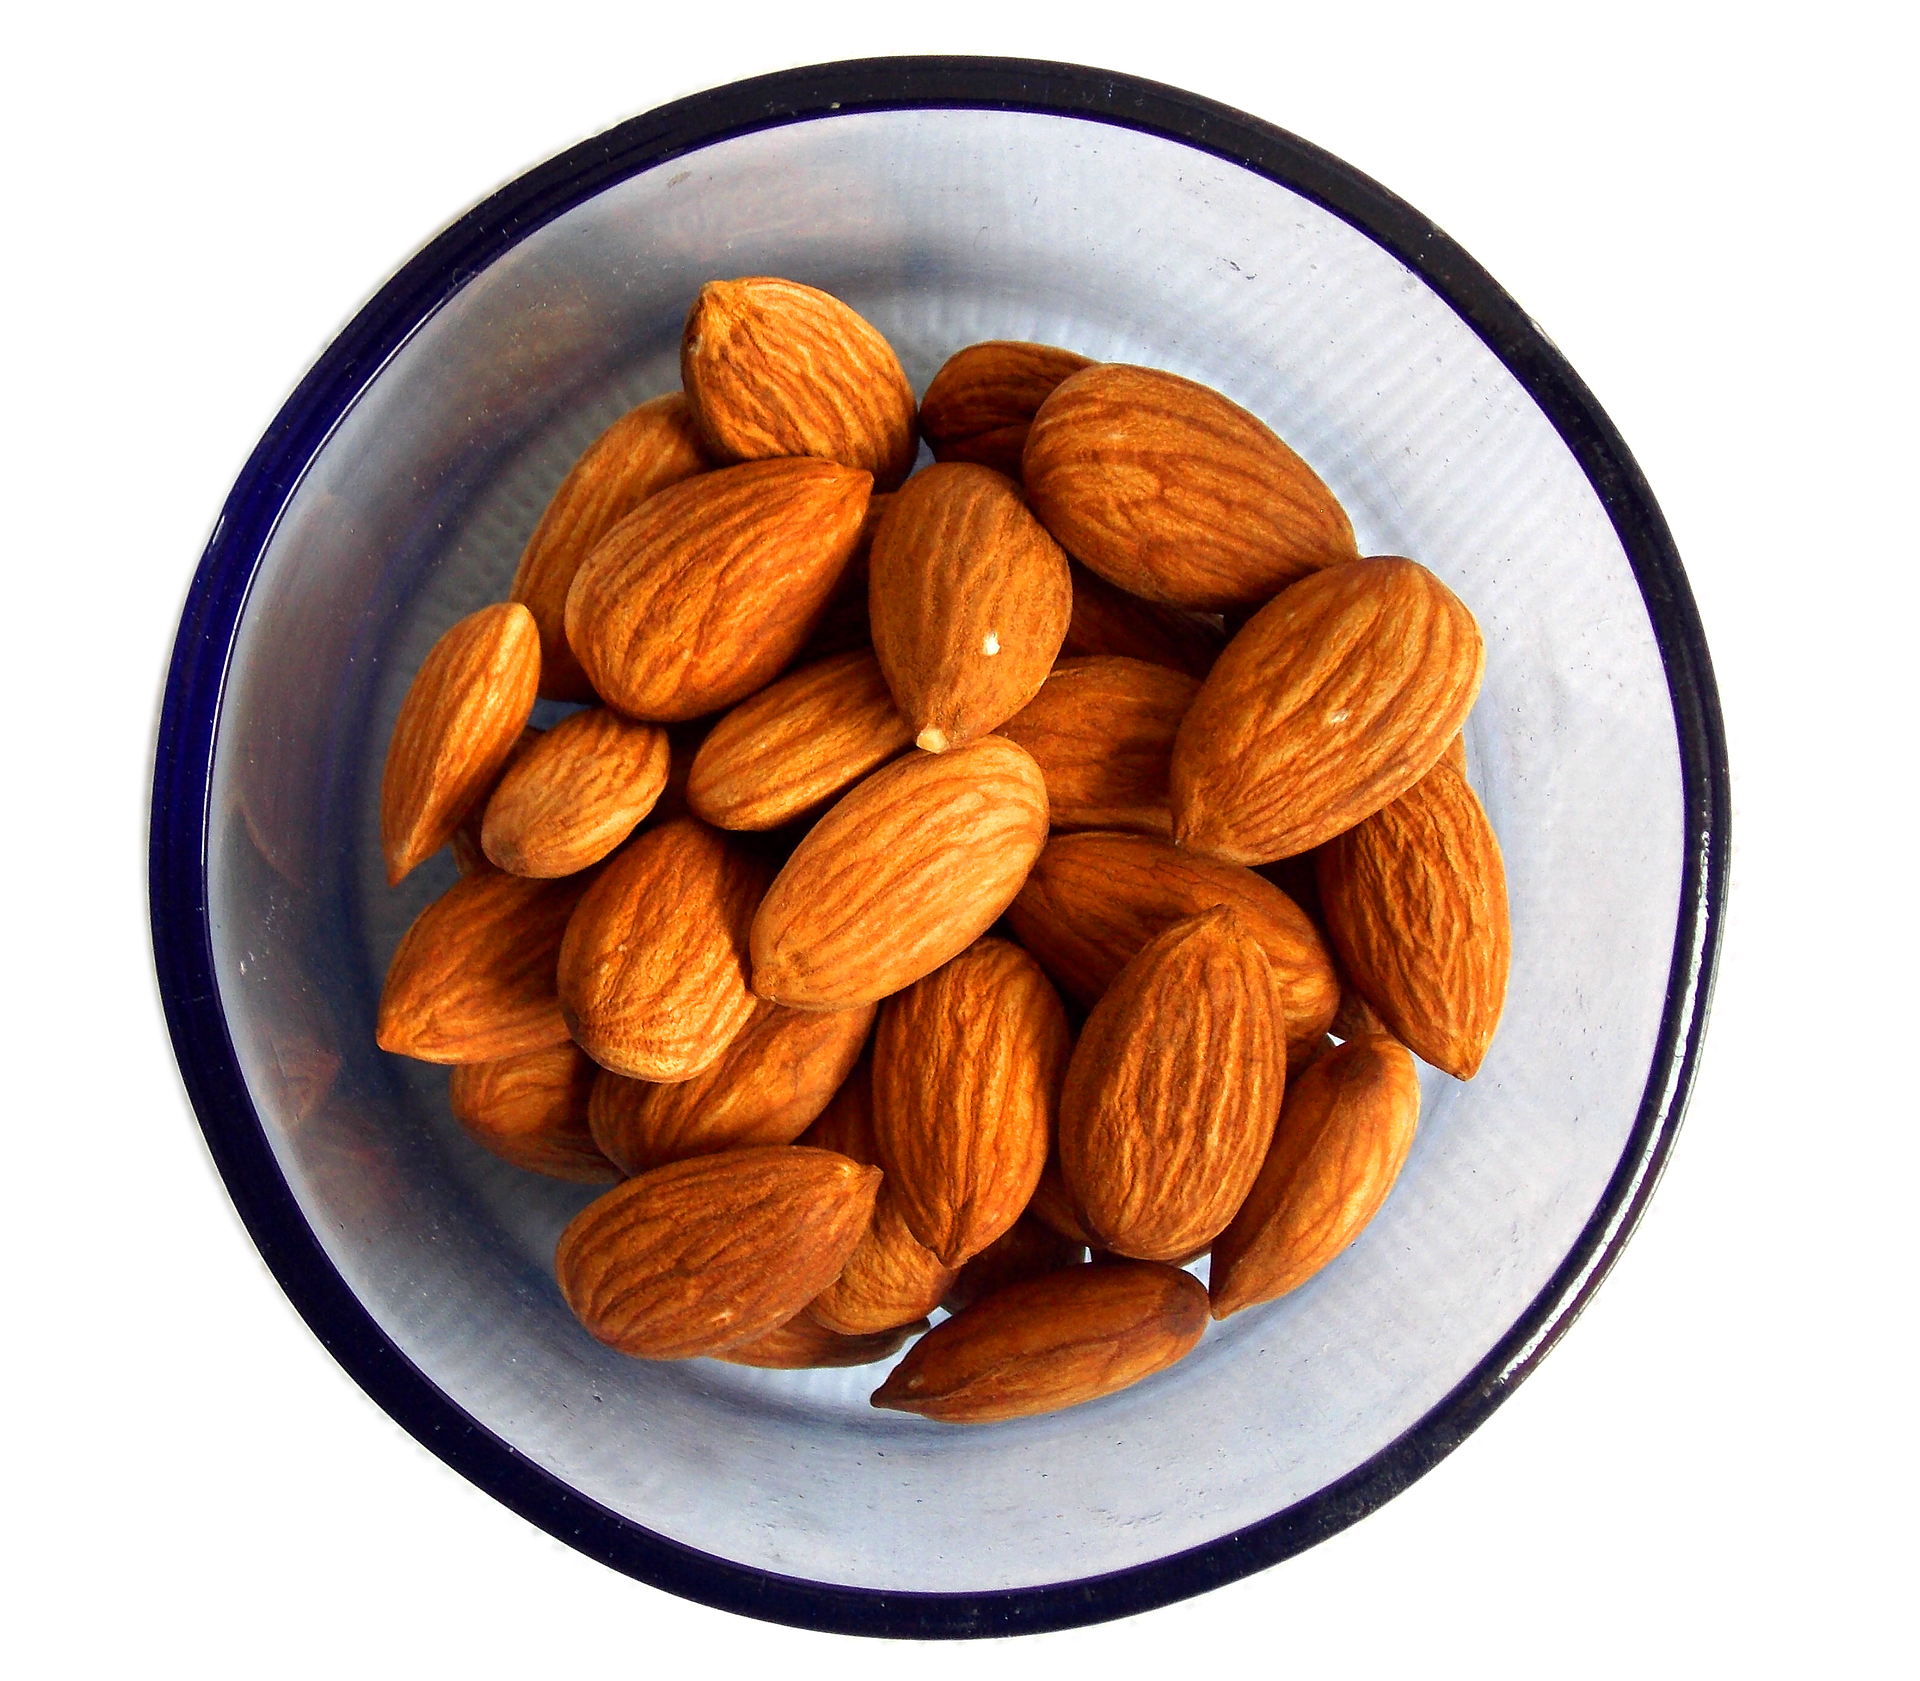 almonds-1740176_1920 pixabay